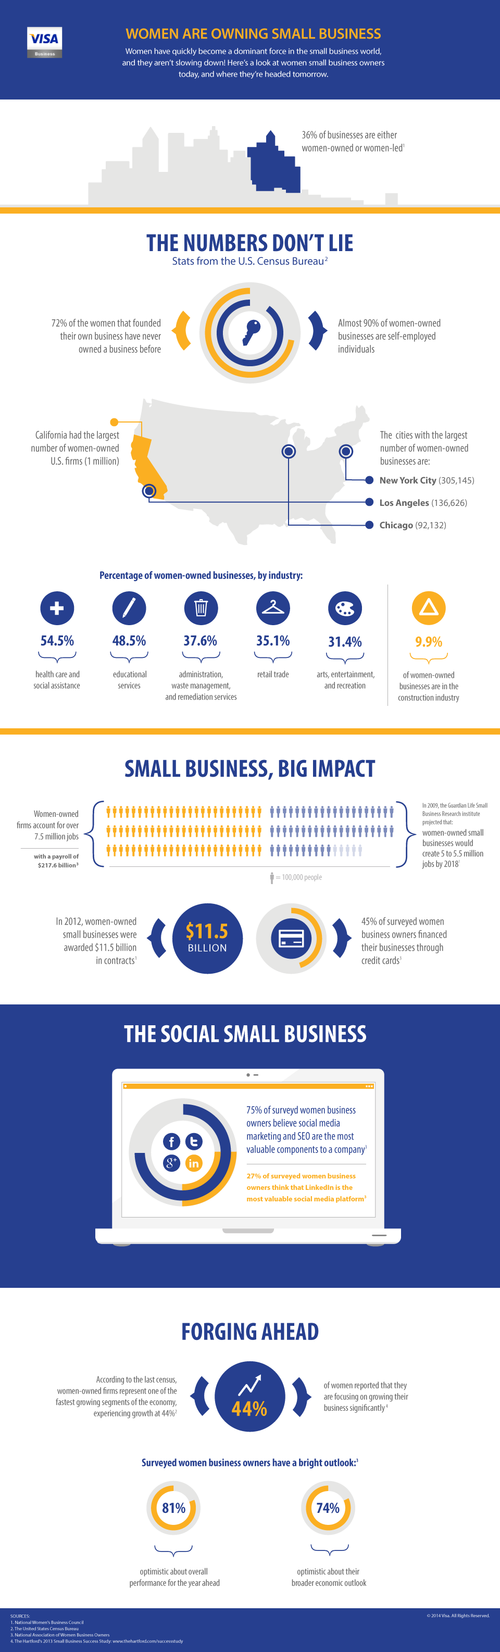 Visa_Business_March_infographic_030614